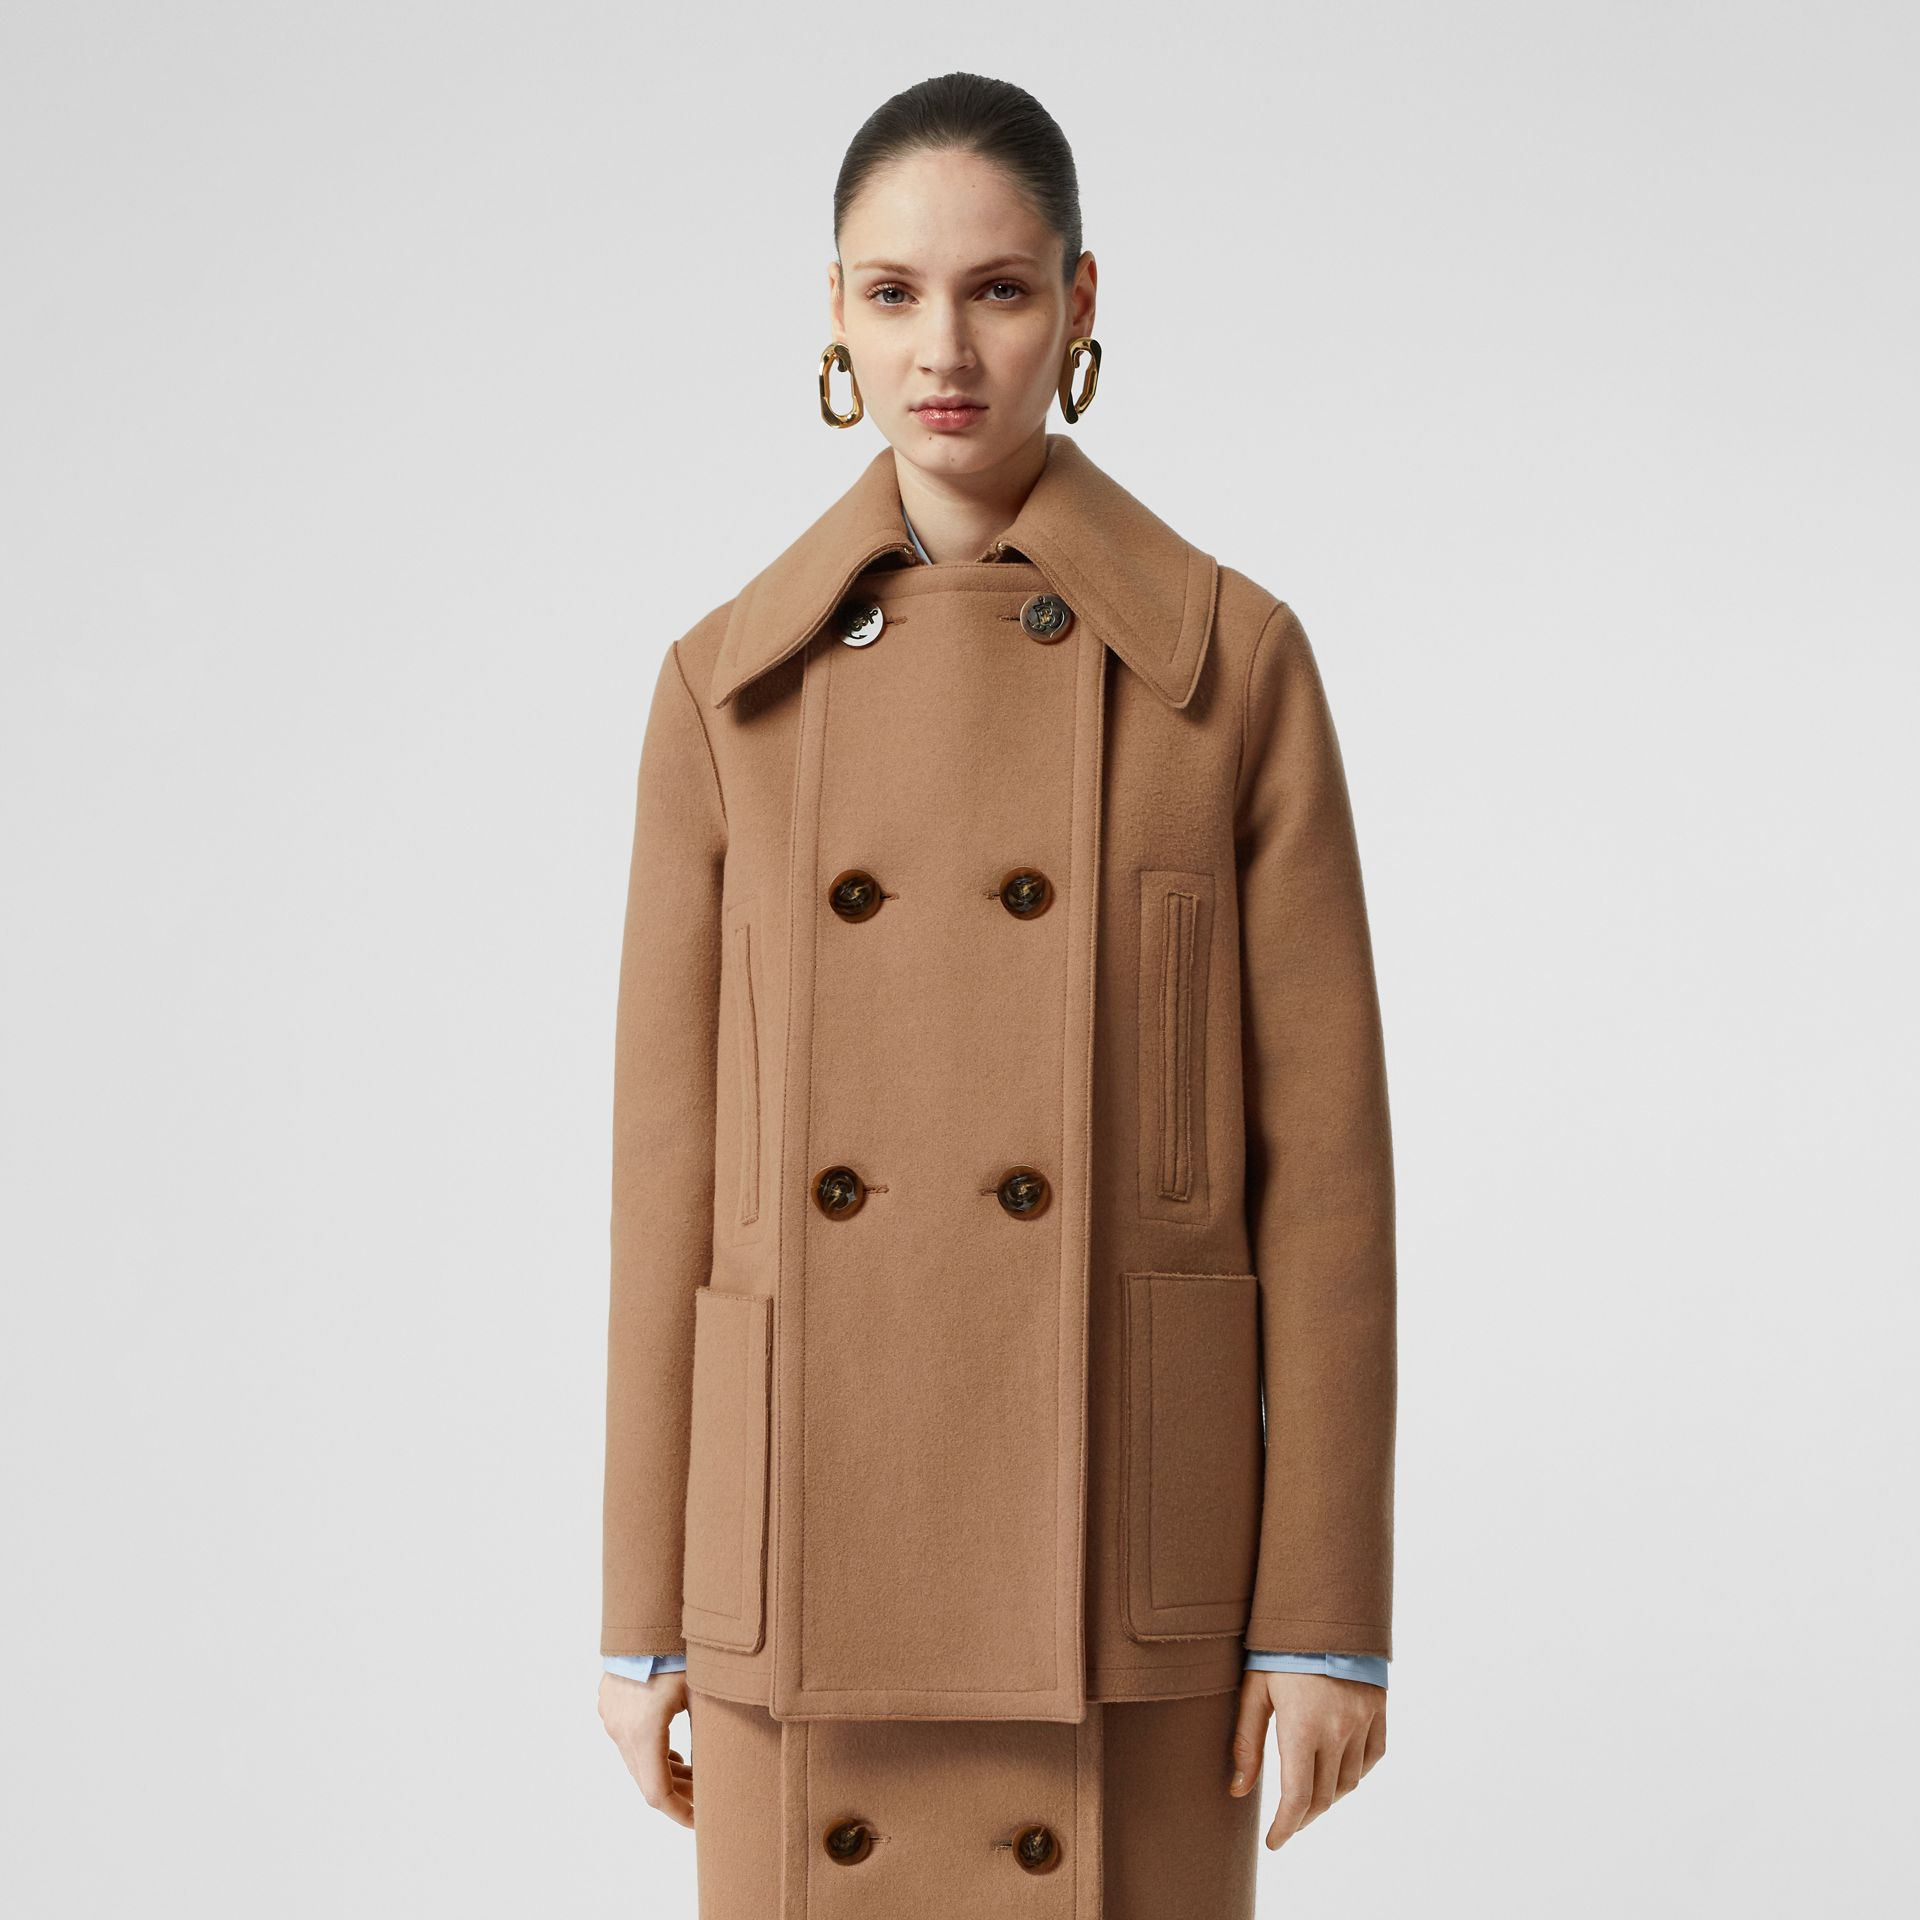 Button Panel Detail Wool Cashmere Pea Coat in Camel - Women | Burberry United Kingdom - gallery image 5